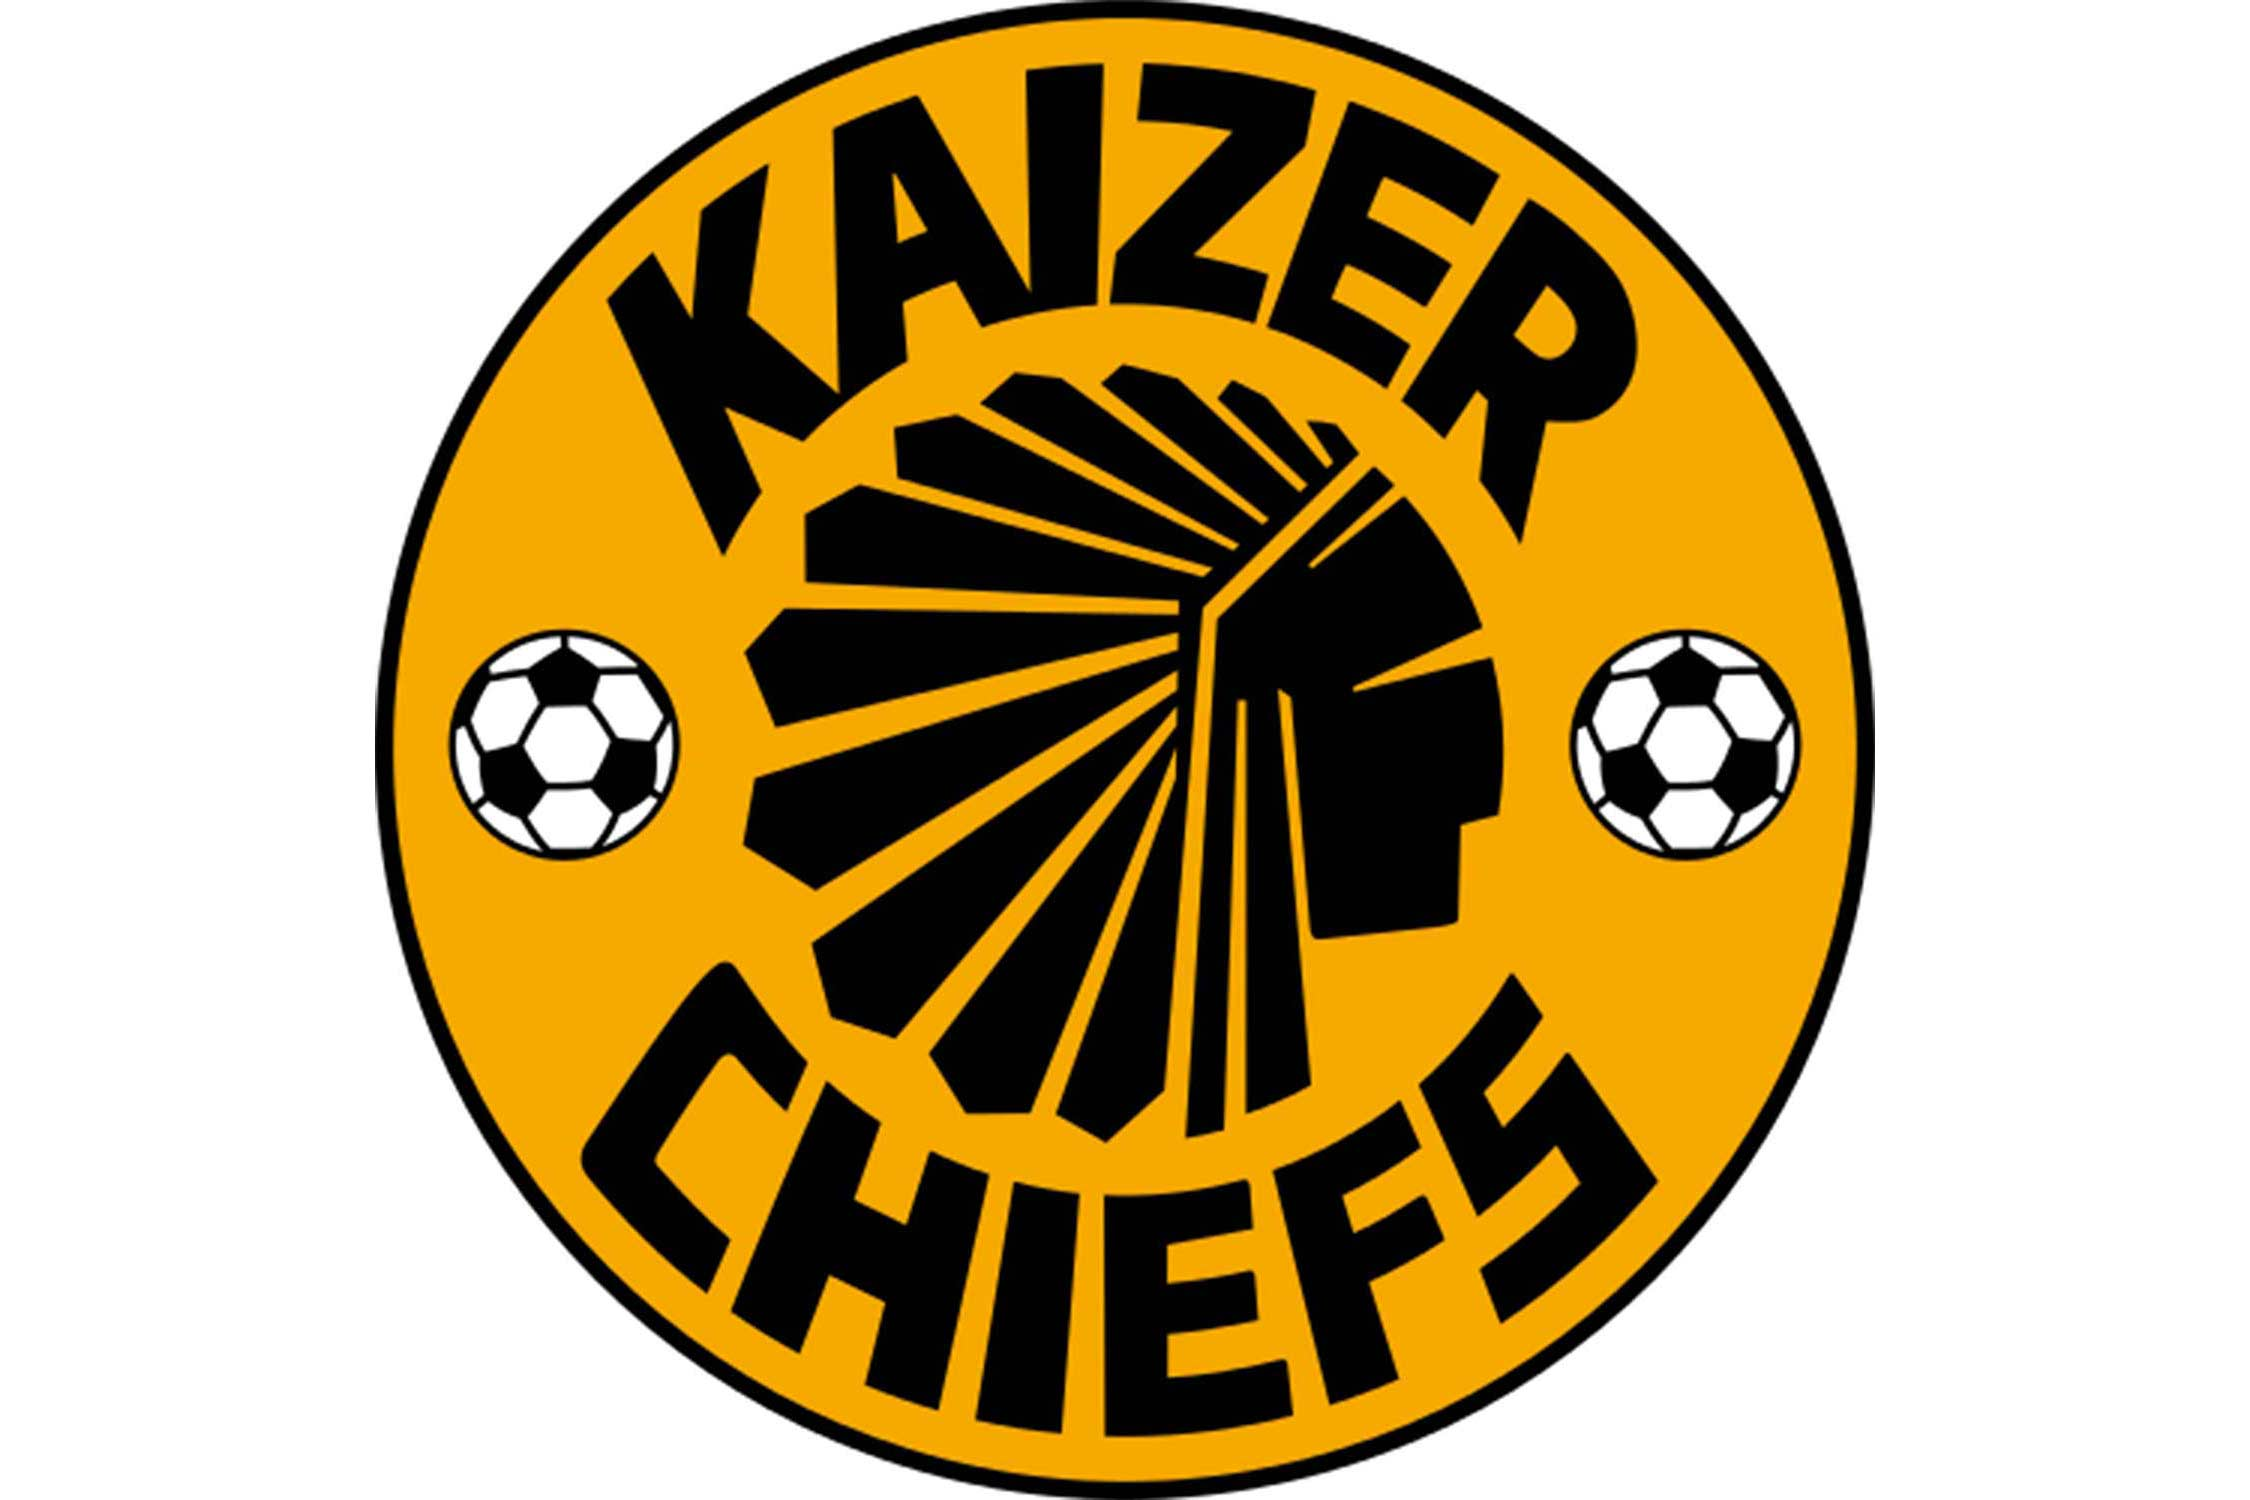 Club founder Kaizer Motaung played for the NASL's Atlanta Chiefs in the late 1960s.